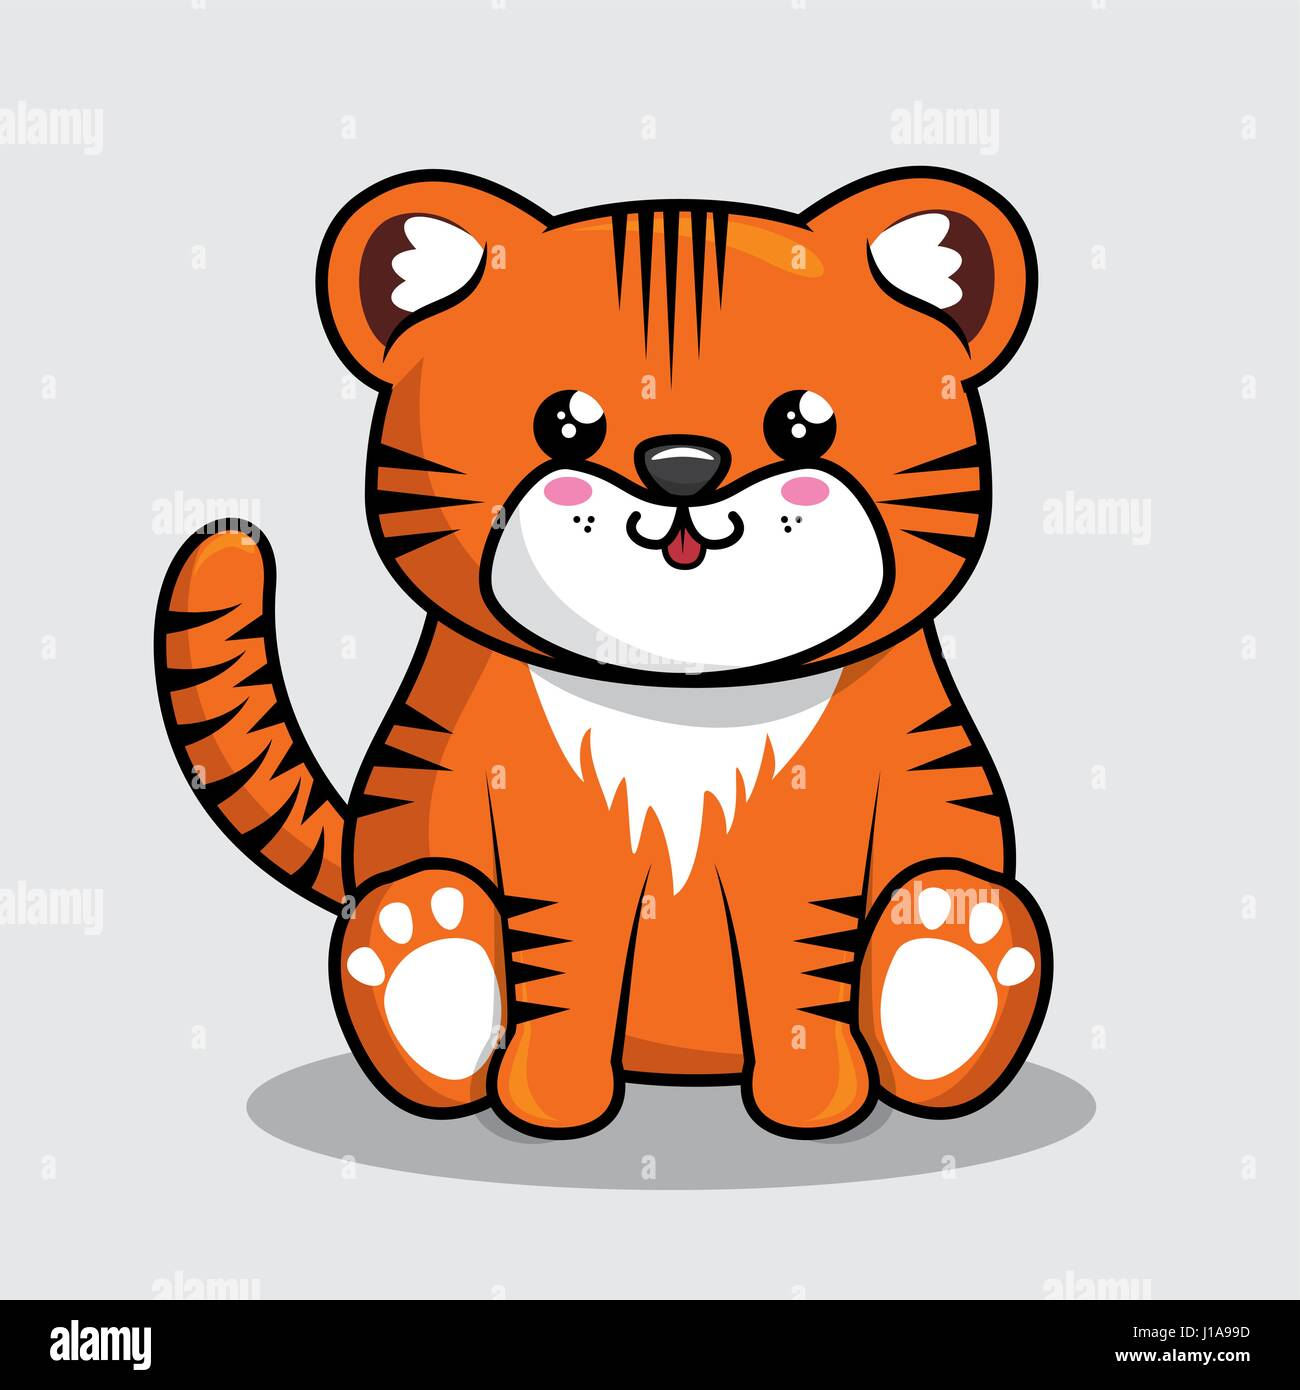 tiger funny stock photos u0026 tiger funny stock images alamy